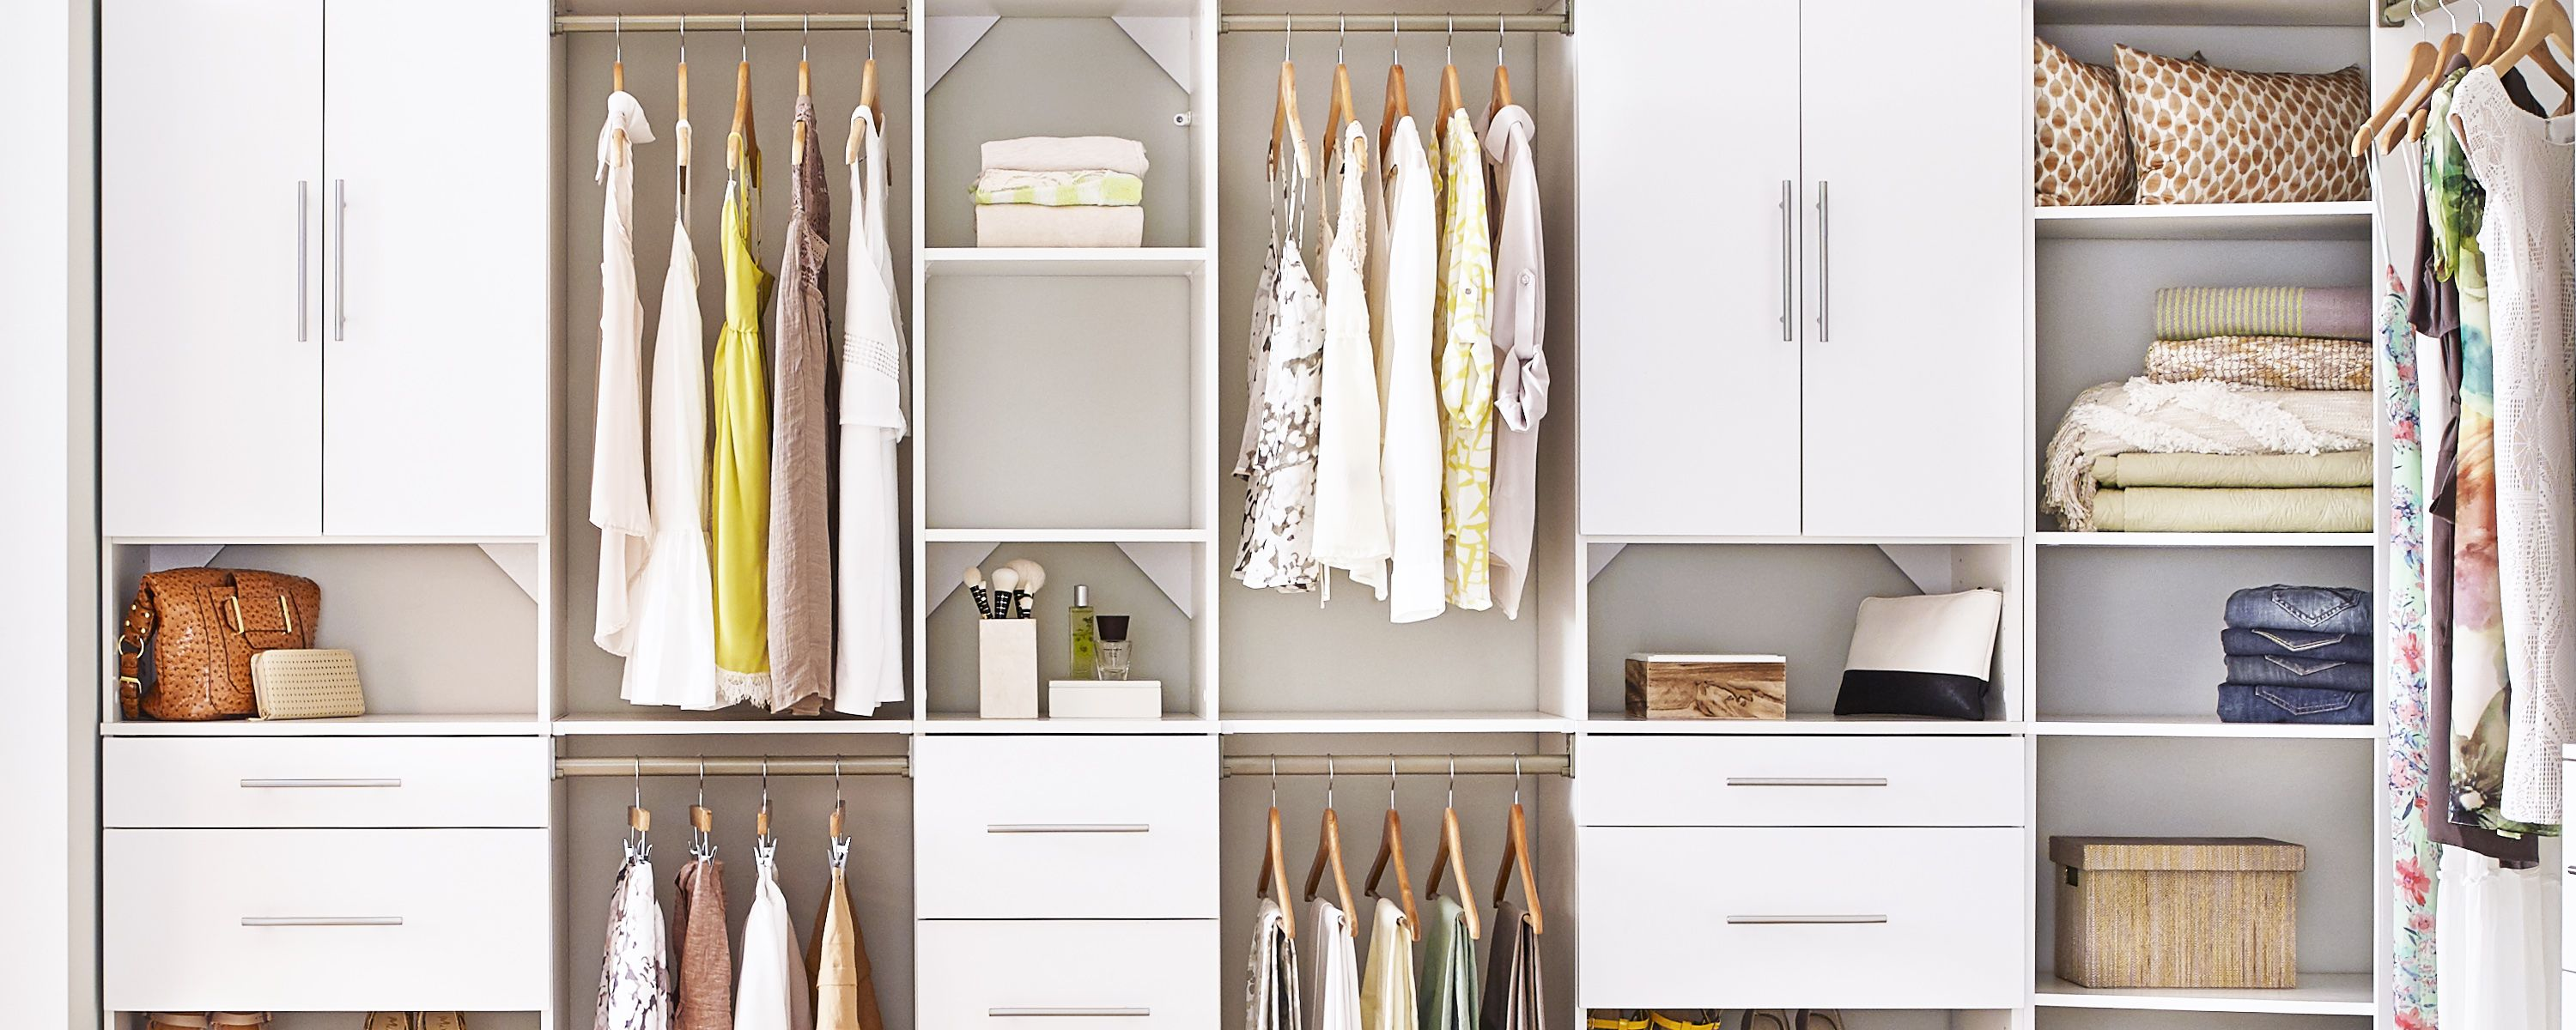 Closetmaid S Closet Organization Solutions Feature Fixed Mount And